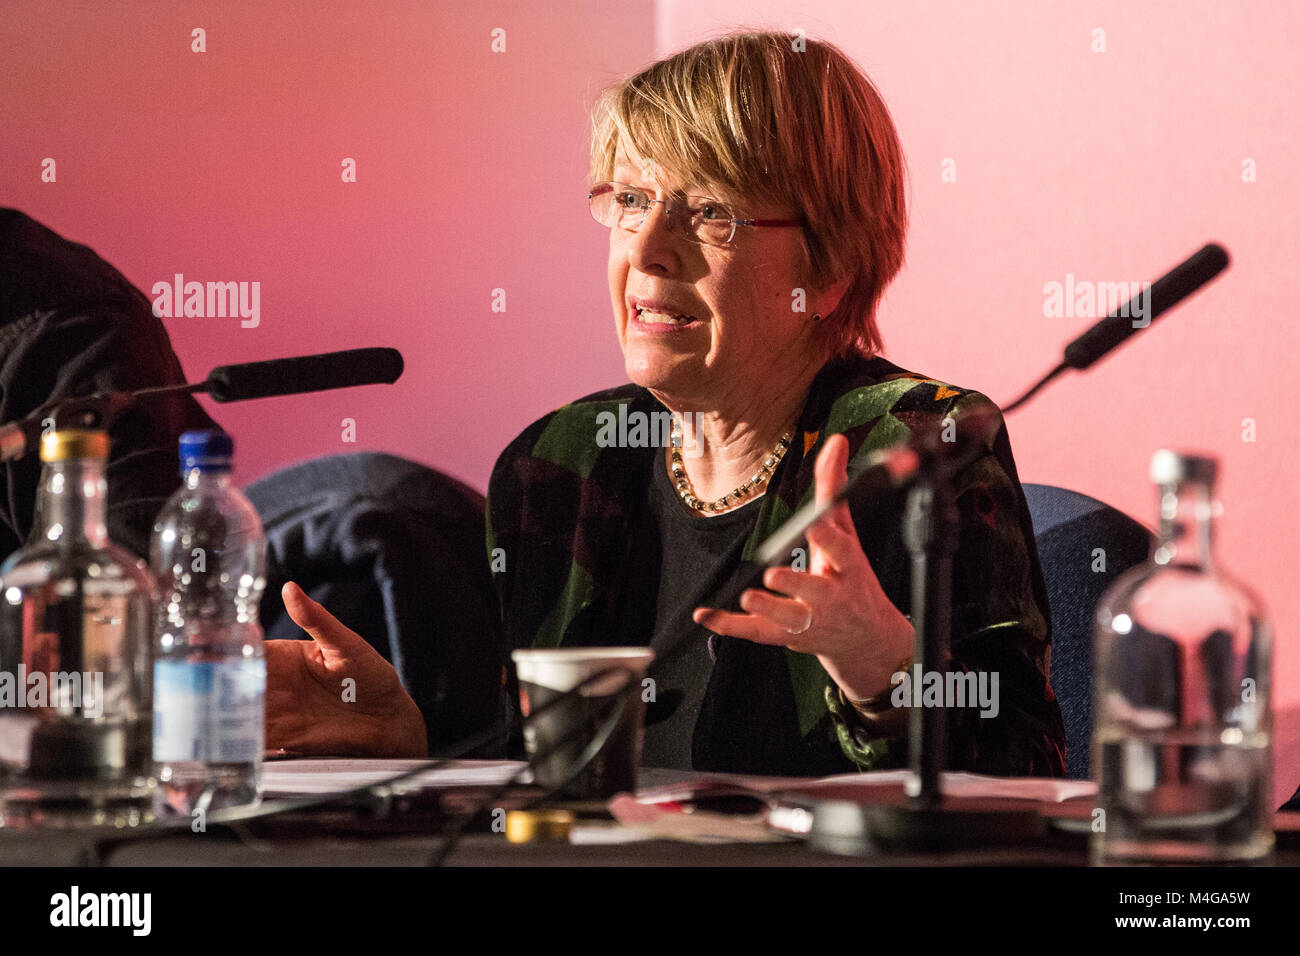 London, UK. 10th February, 2018. Anna Coote, Head of Social Policy at the New Economics Foundation, addresses the - Stock Image